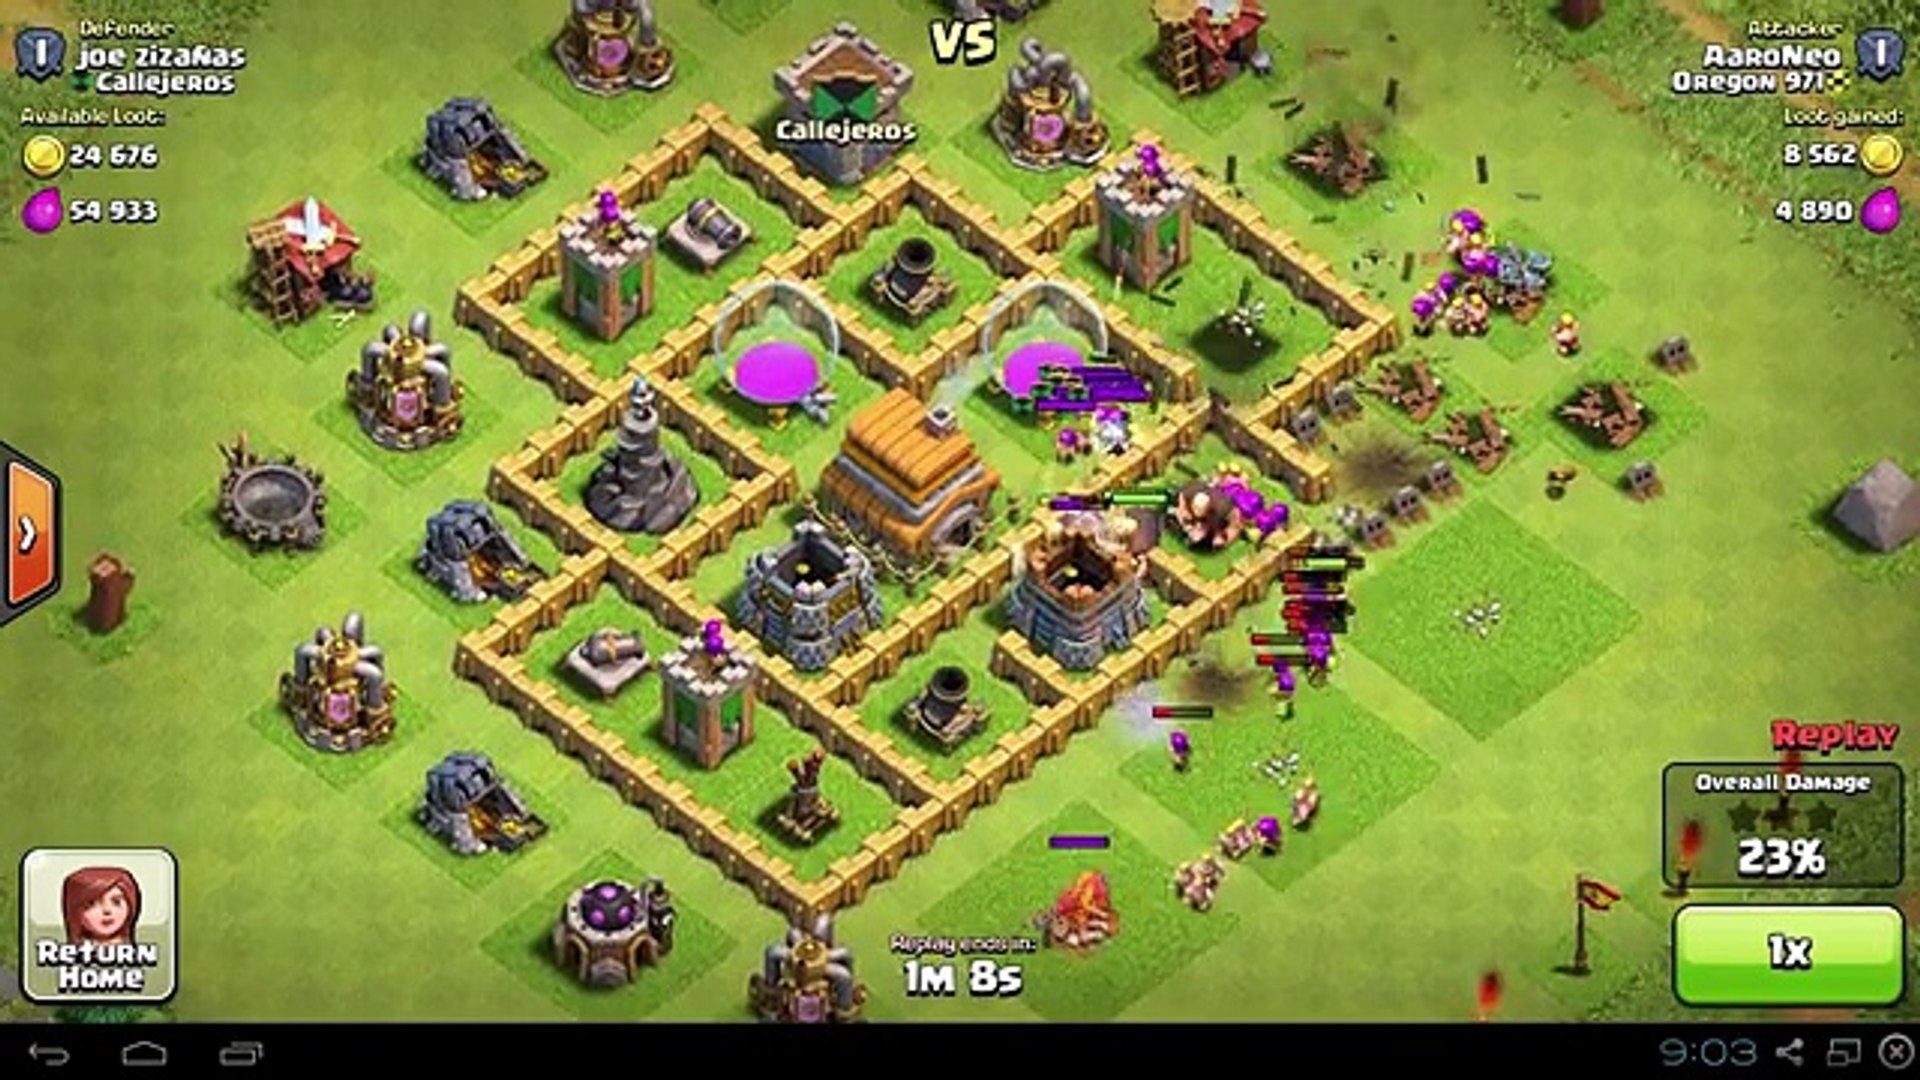 Best Town Hall Level 5 Th5 Raiding Attack Strategy 1350 Trophies Clash Of Clans Part 2 Video Dailymotion